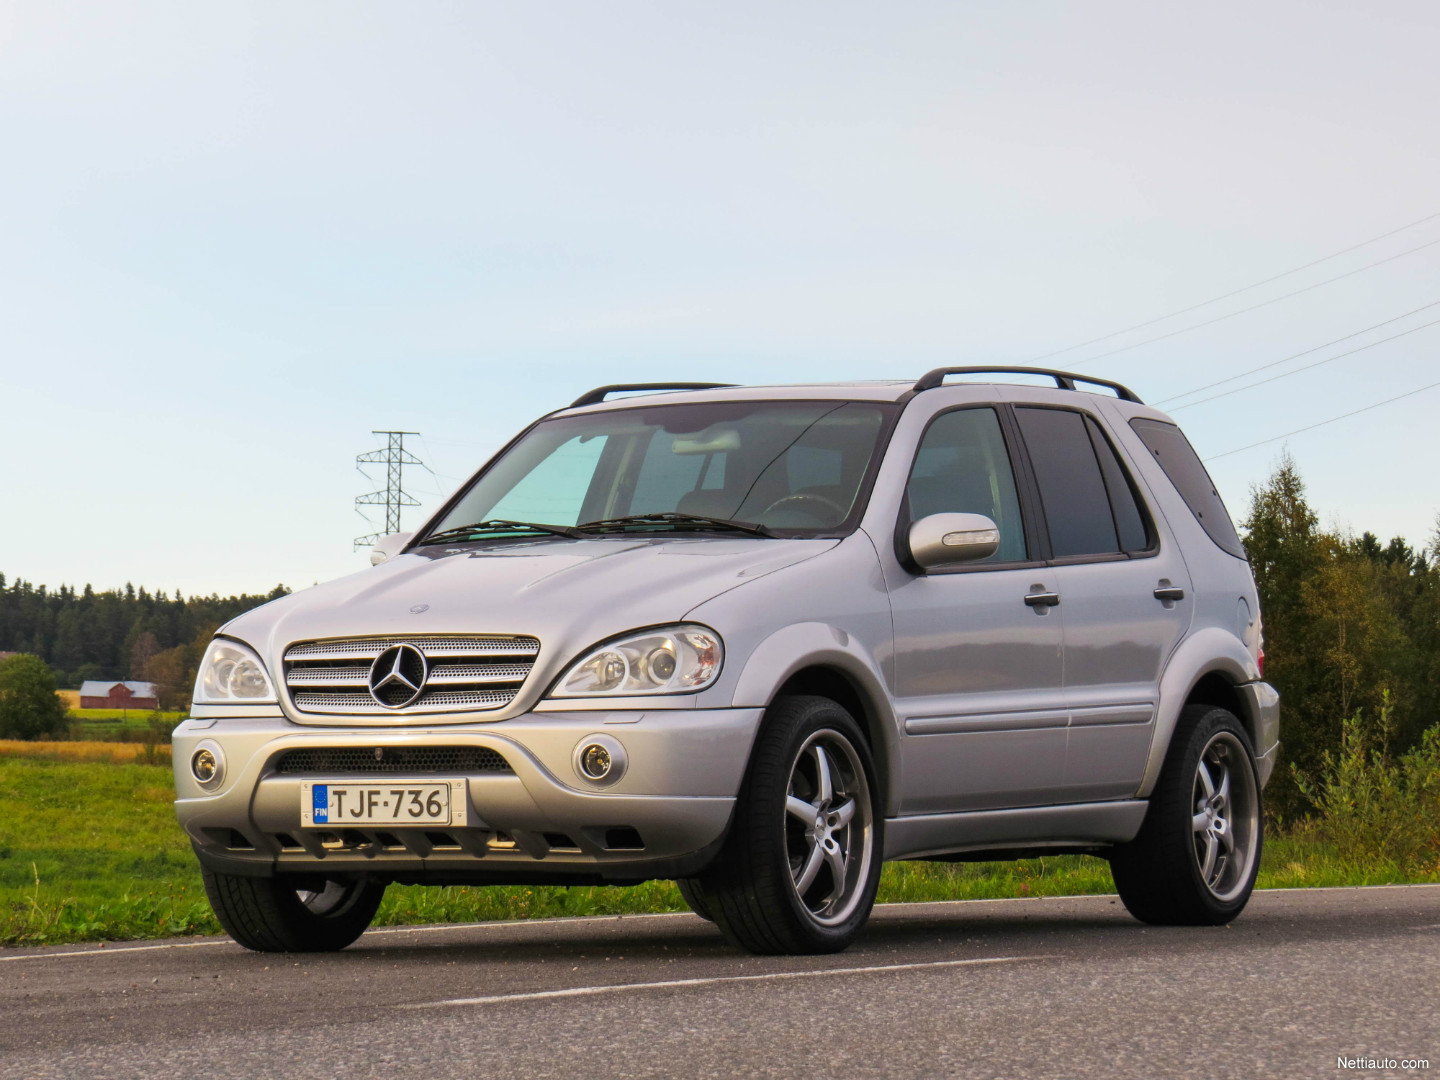 mercedes benz ml 55 amg ml55 amg facelift 4x4 2002 used vehicle nettiauto. Black Bedroom Furniture Sets. Home Design Ideas